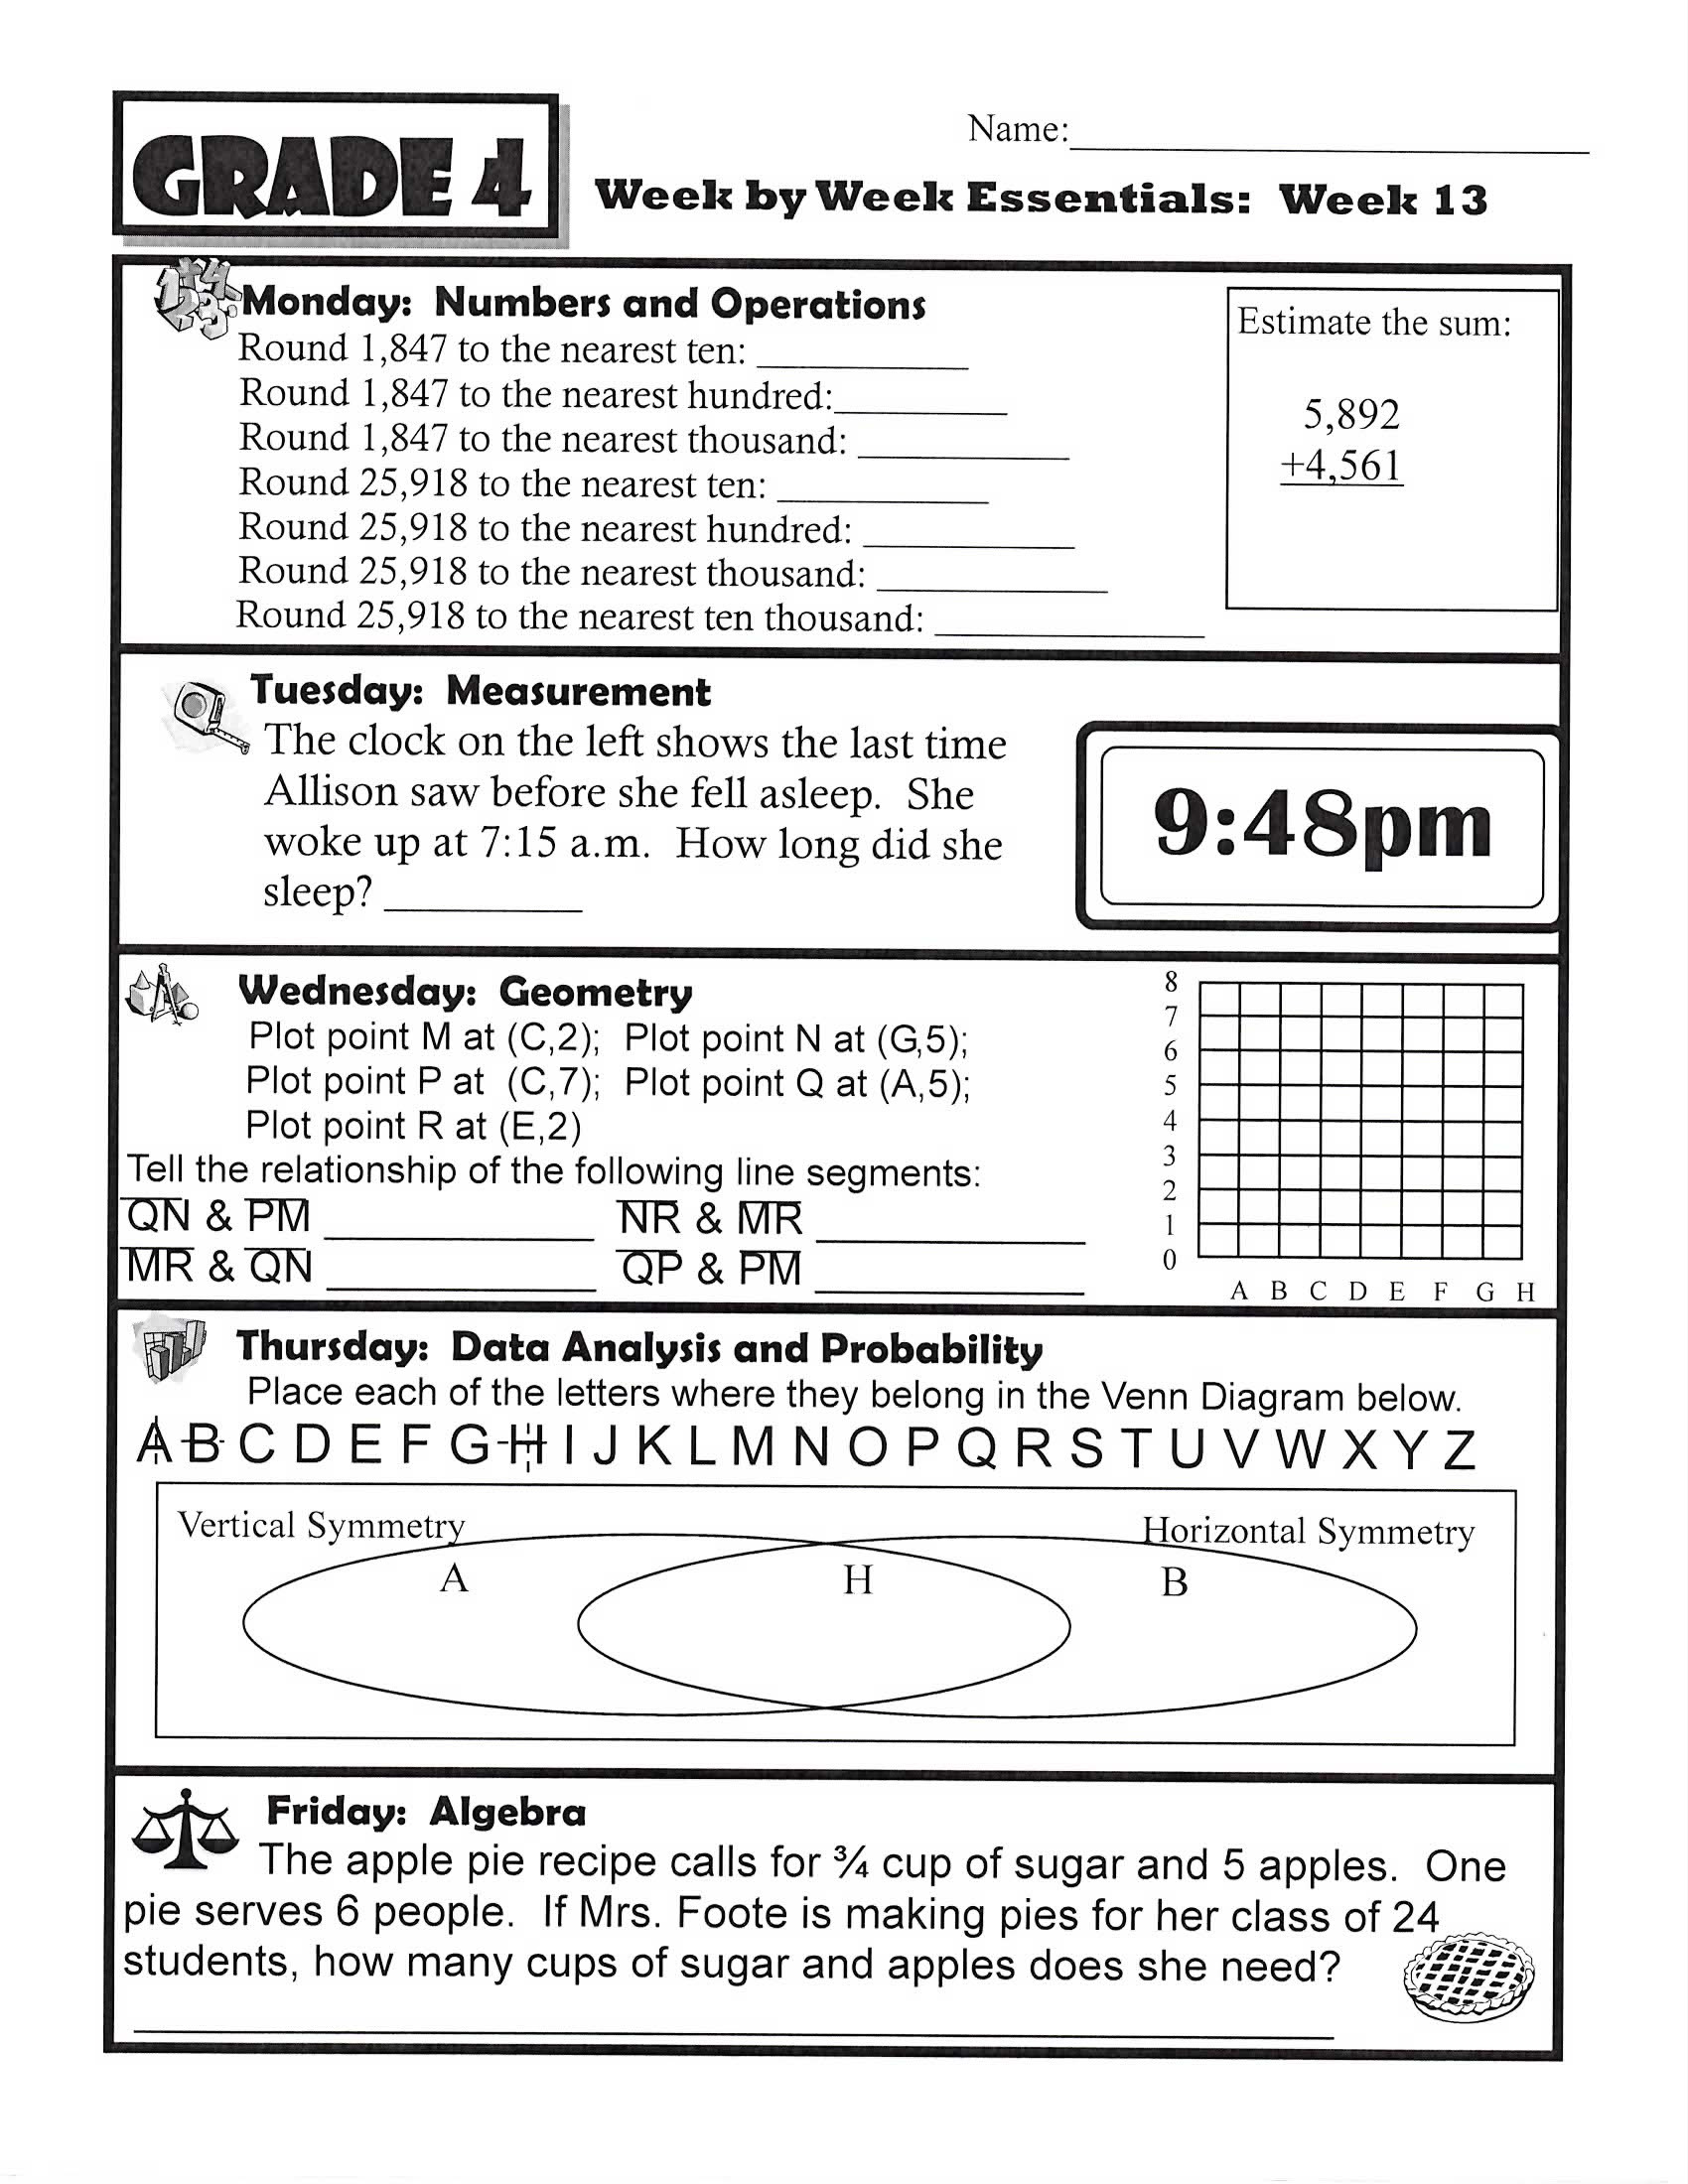 4th Grade Math Review Worksheets Math Worksheet 44 Math Exercises for Grade 4 Picture Ideas